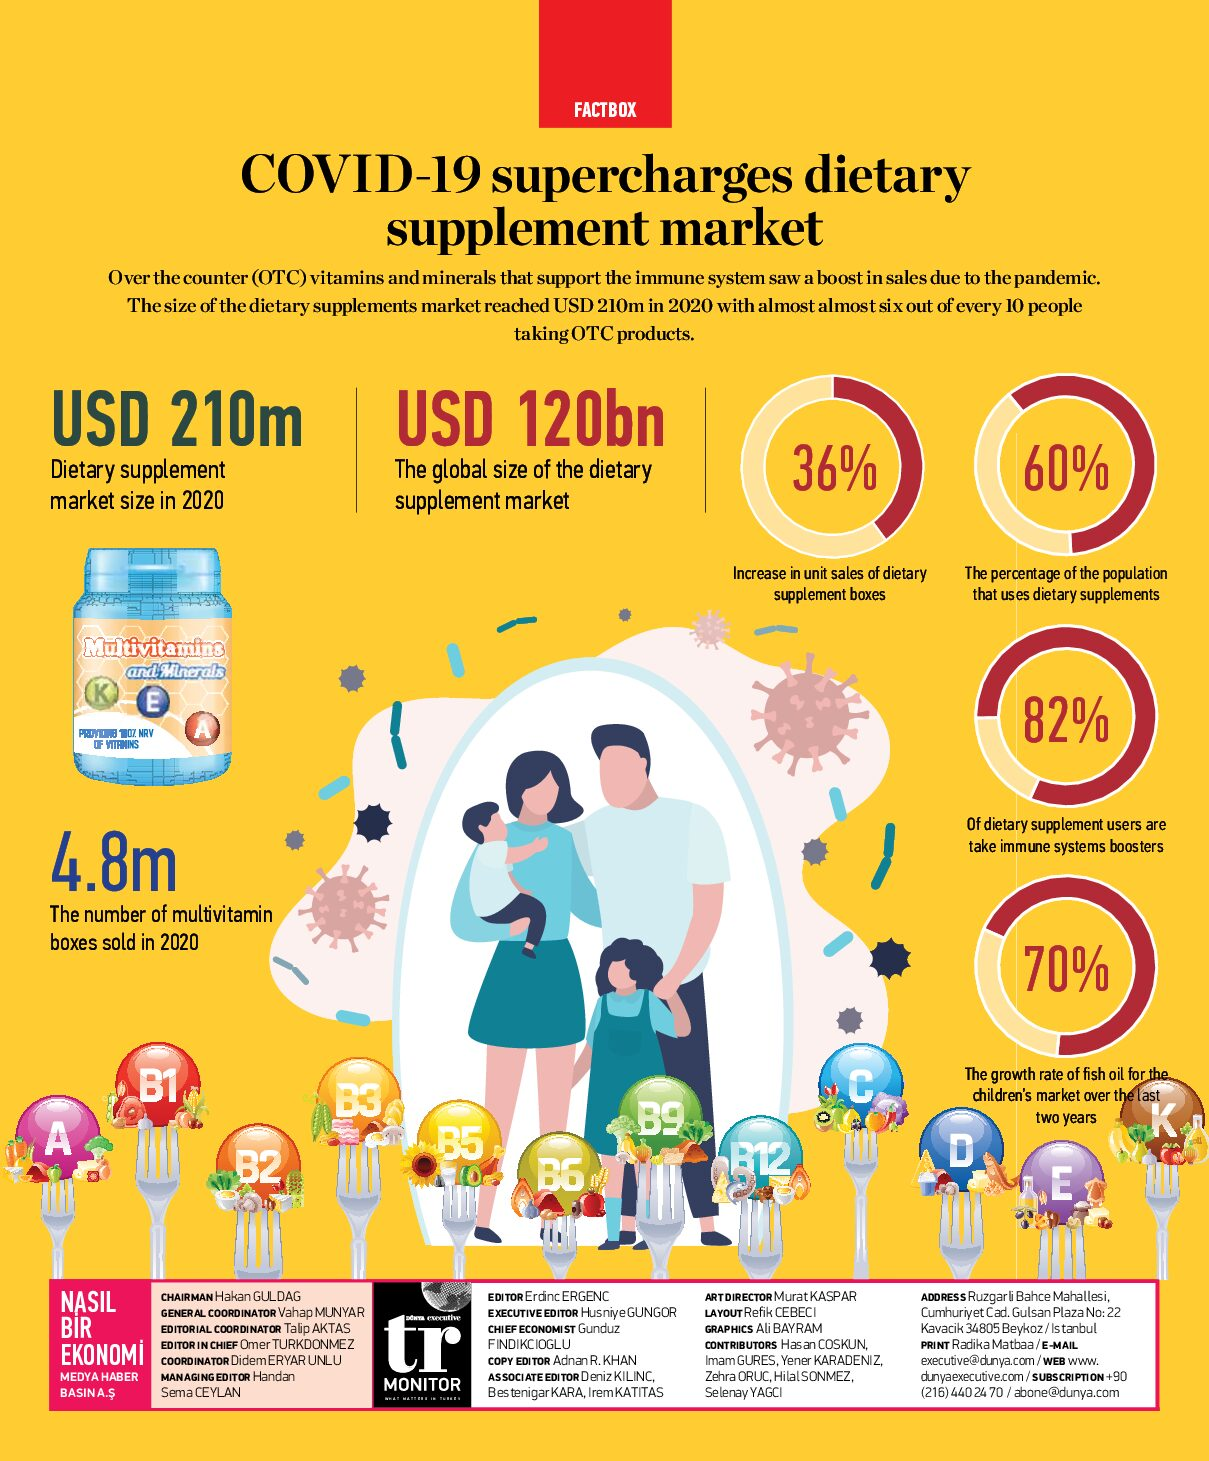 COVID-19 supercharges dietary supplement market